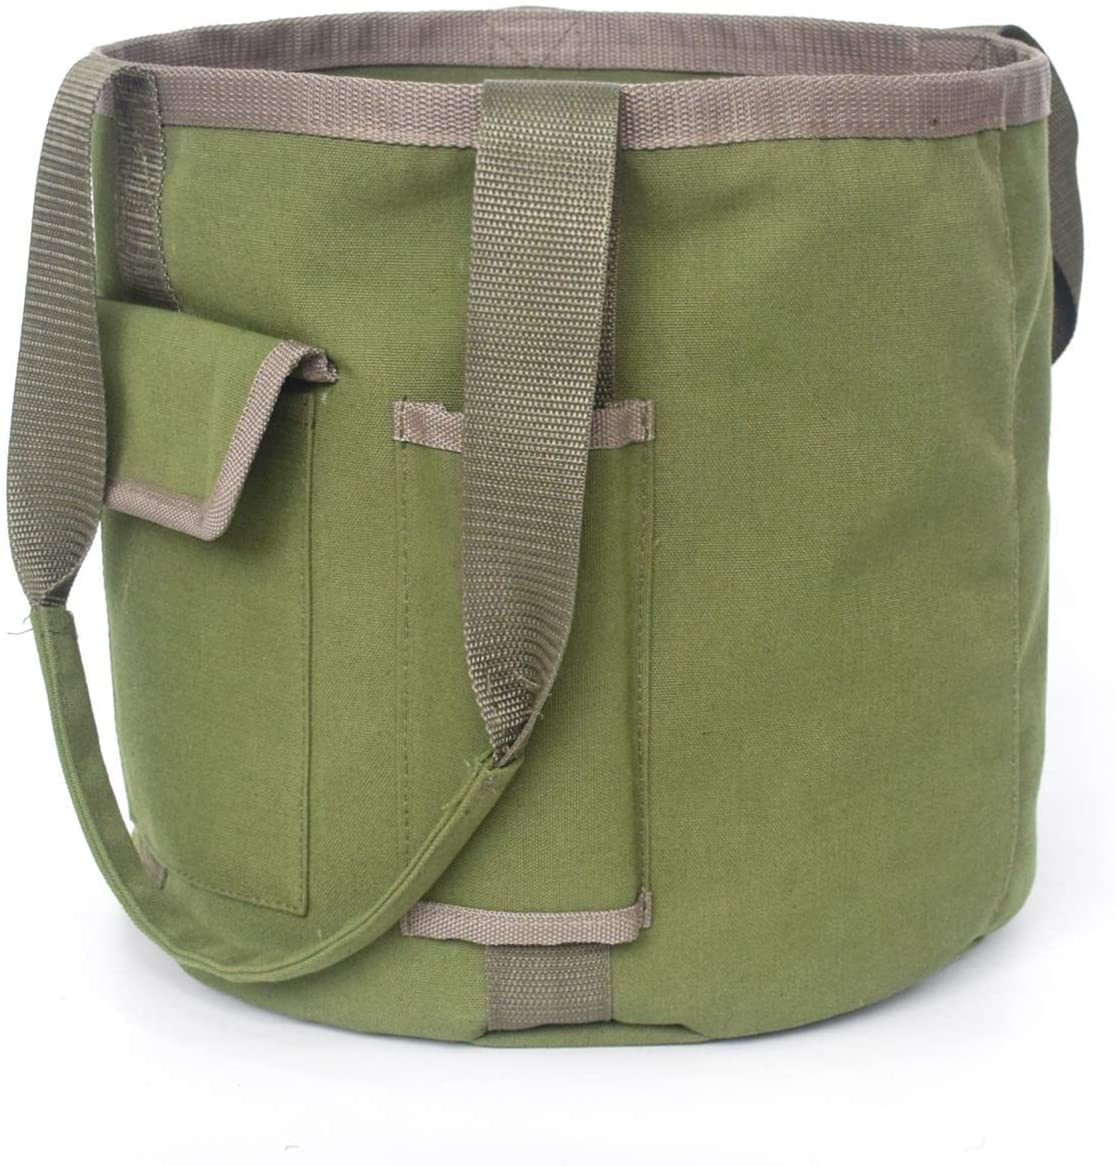 HANC Green Bucket Garden Tools Bag with 2 Pockets, Tote Garden Tools Bag in Water Proof Canvas, Storage Organizer for Men Or Women(Bag Only)